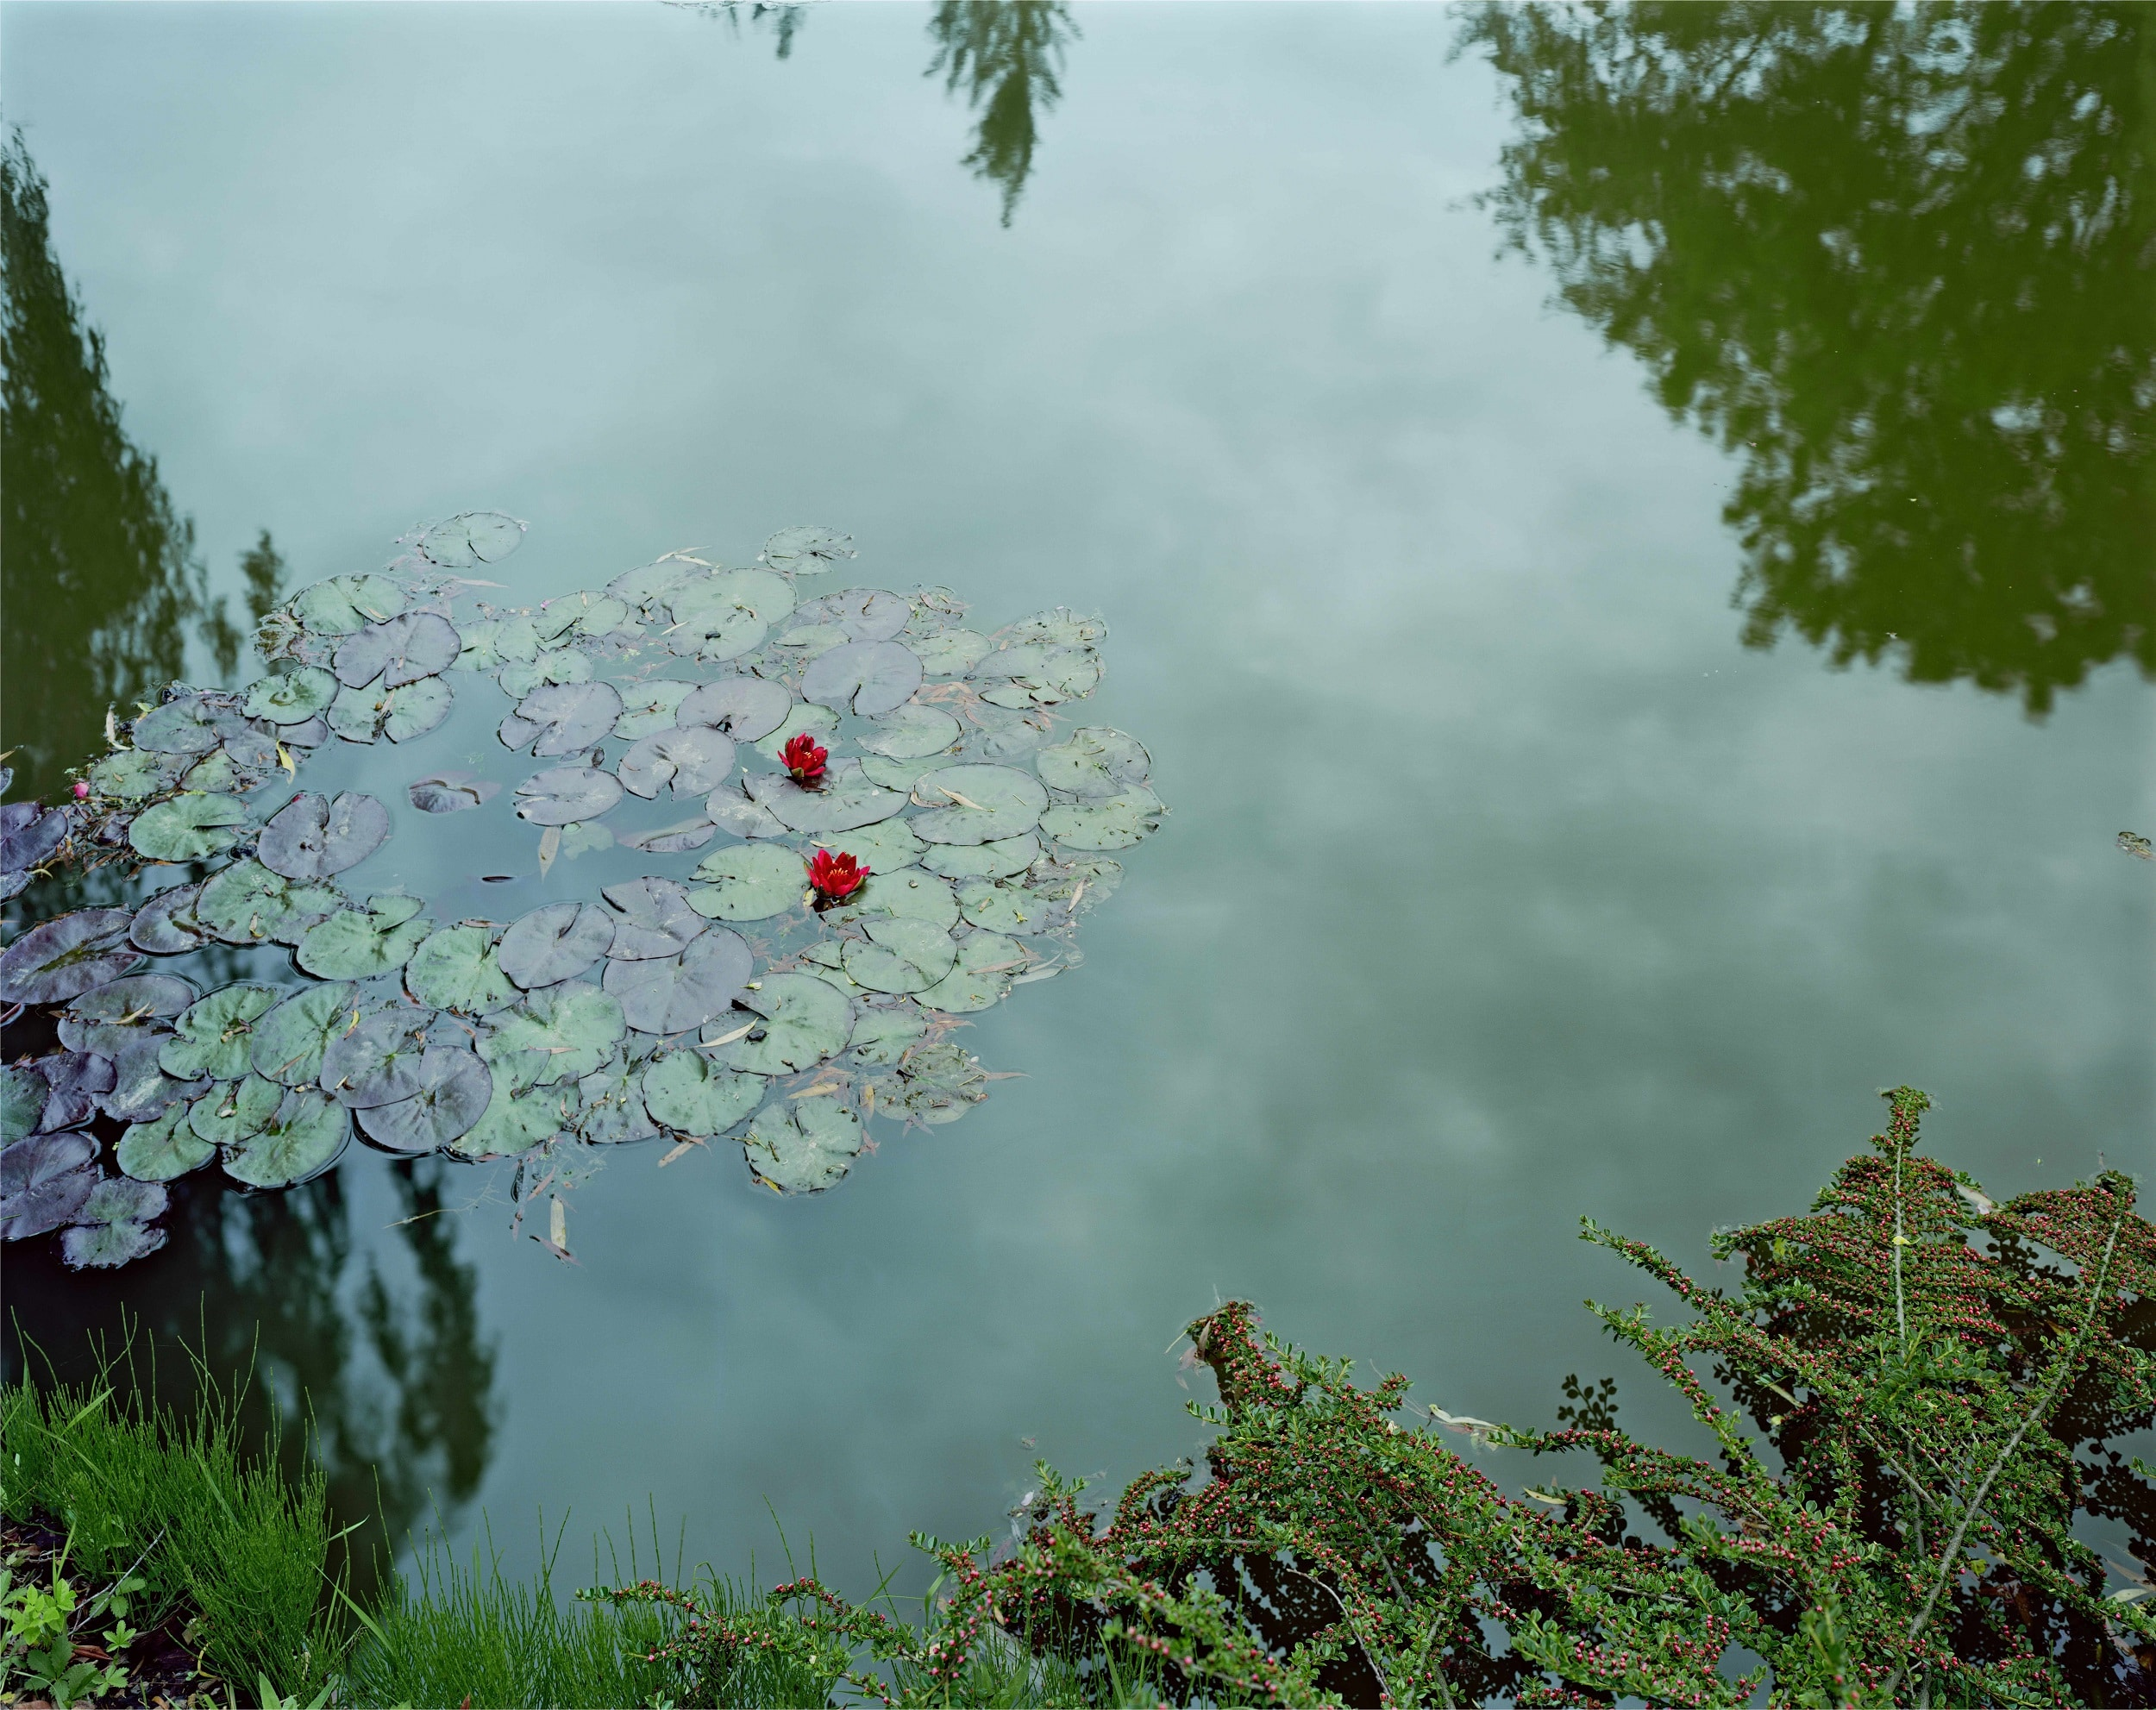 Stephen Shore, Giverny, France